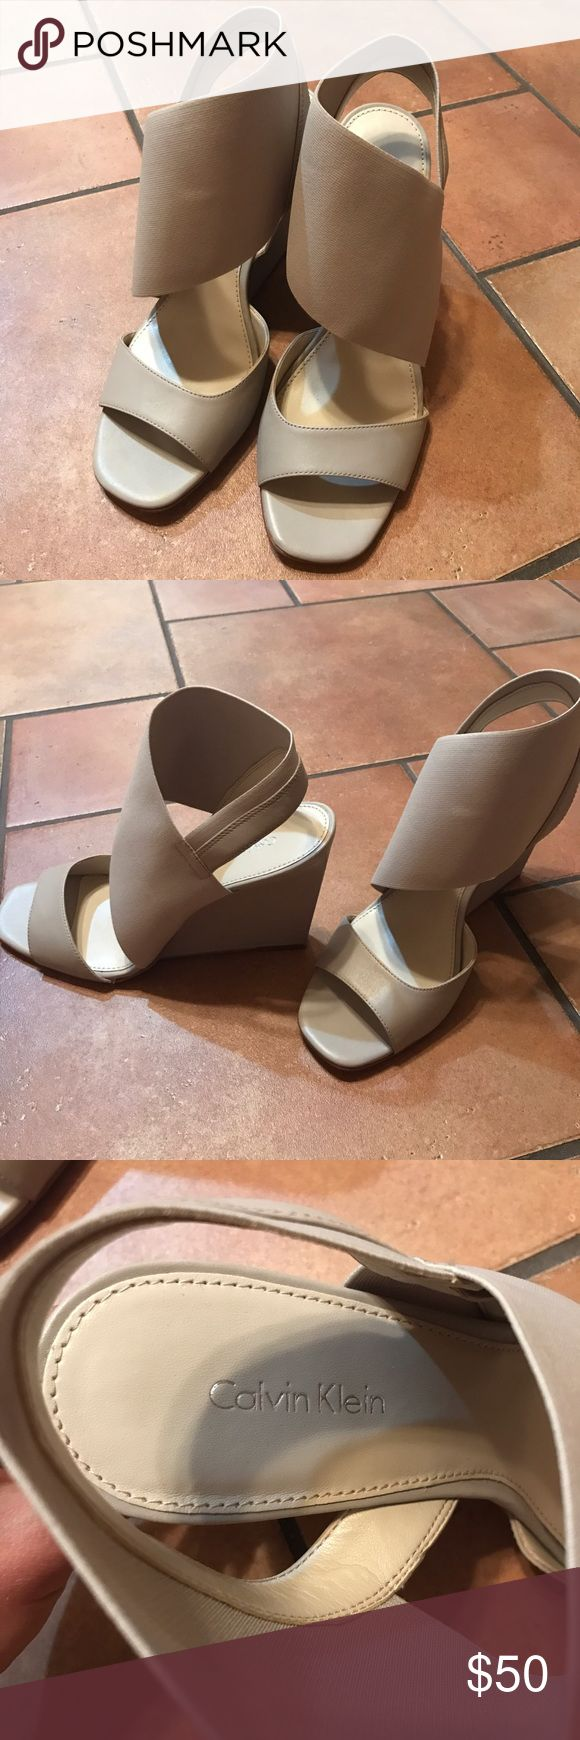 Calvin Klein wedges EUC only worn once. Light gray/taupe Calvin Klein summer wedges. Size 9 Calvin Klein Shoes Wedges